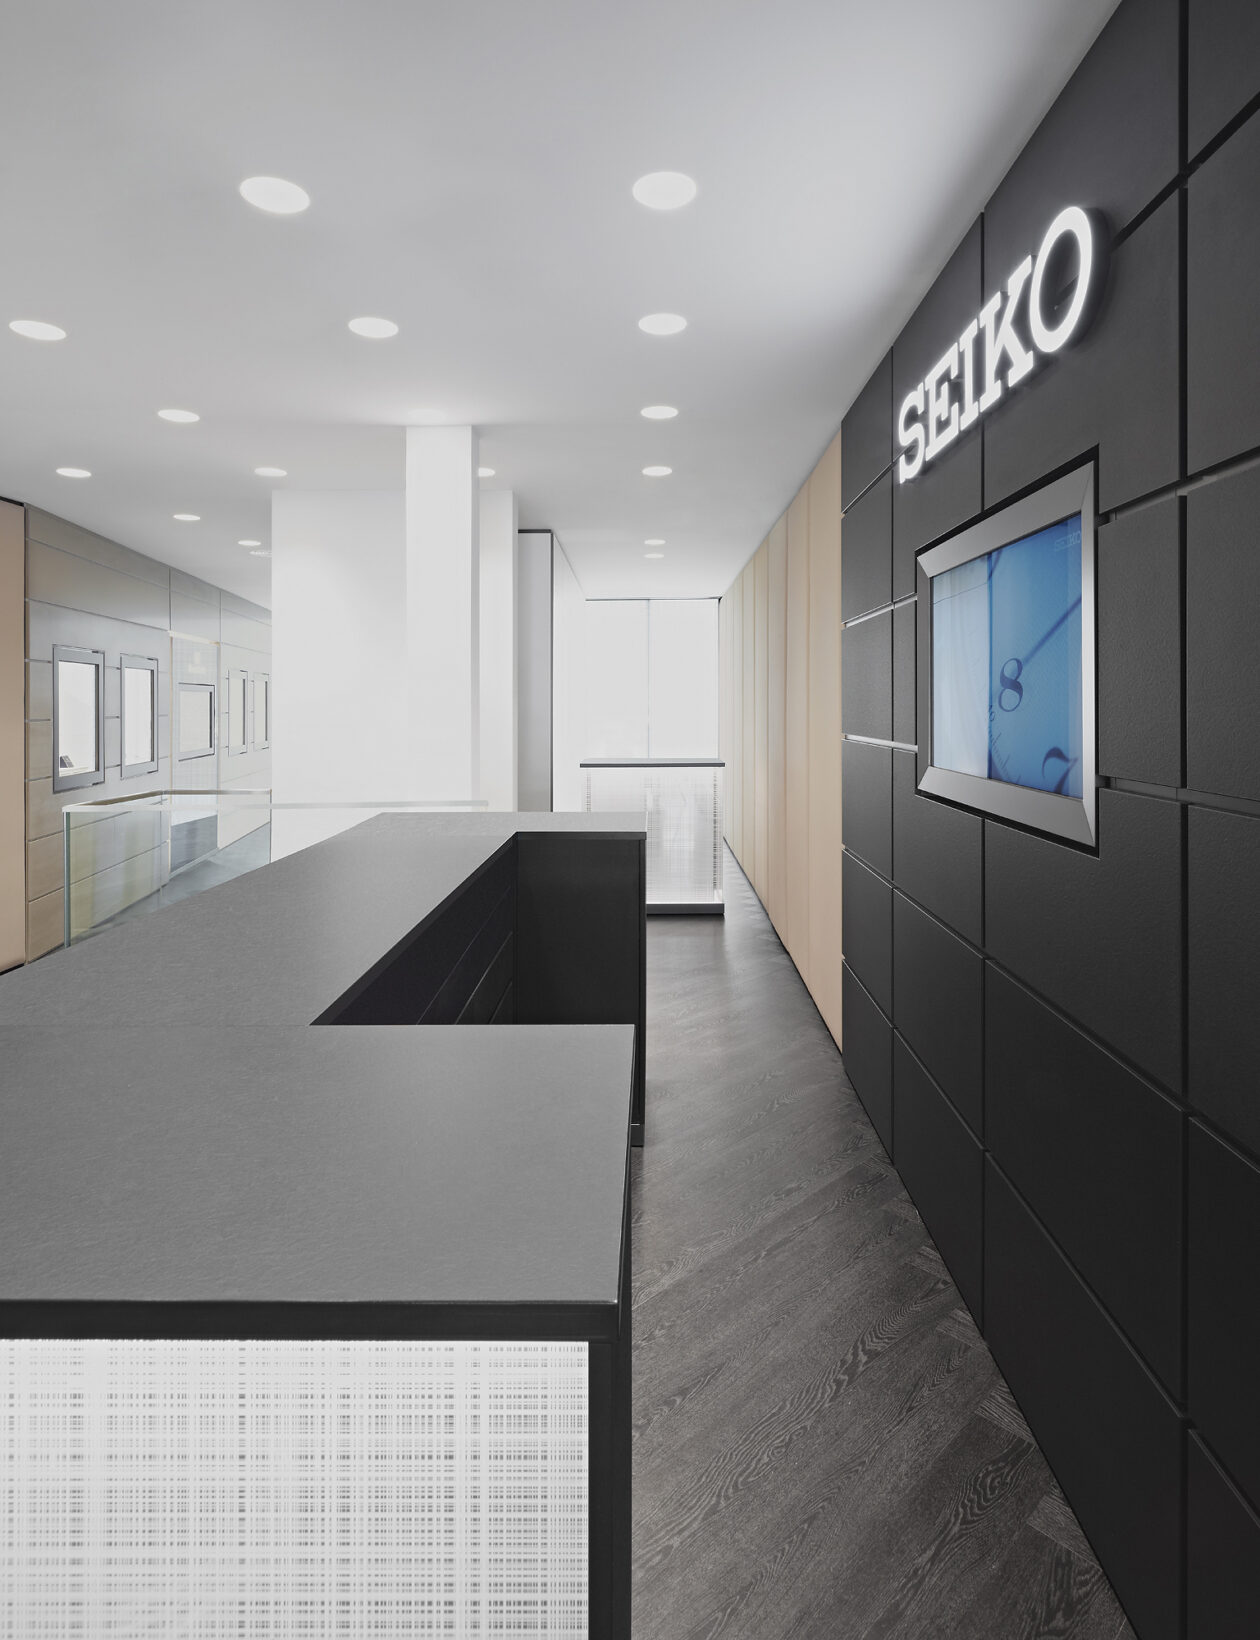 Seiko Boutique Hamburg 05